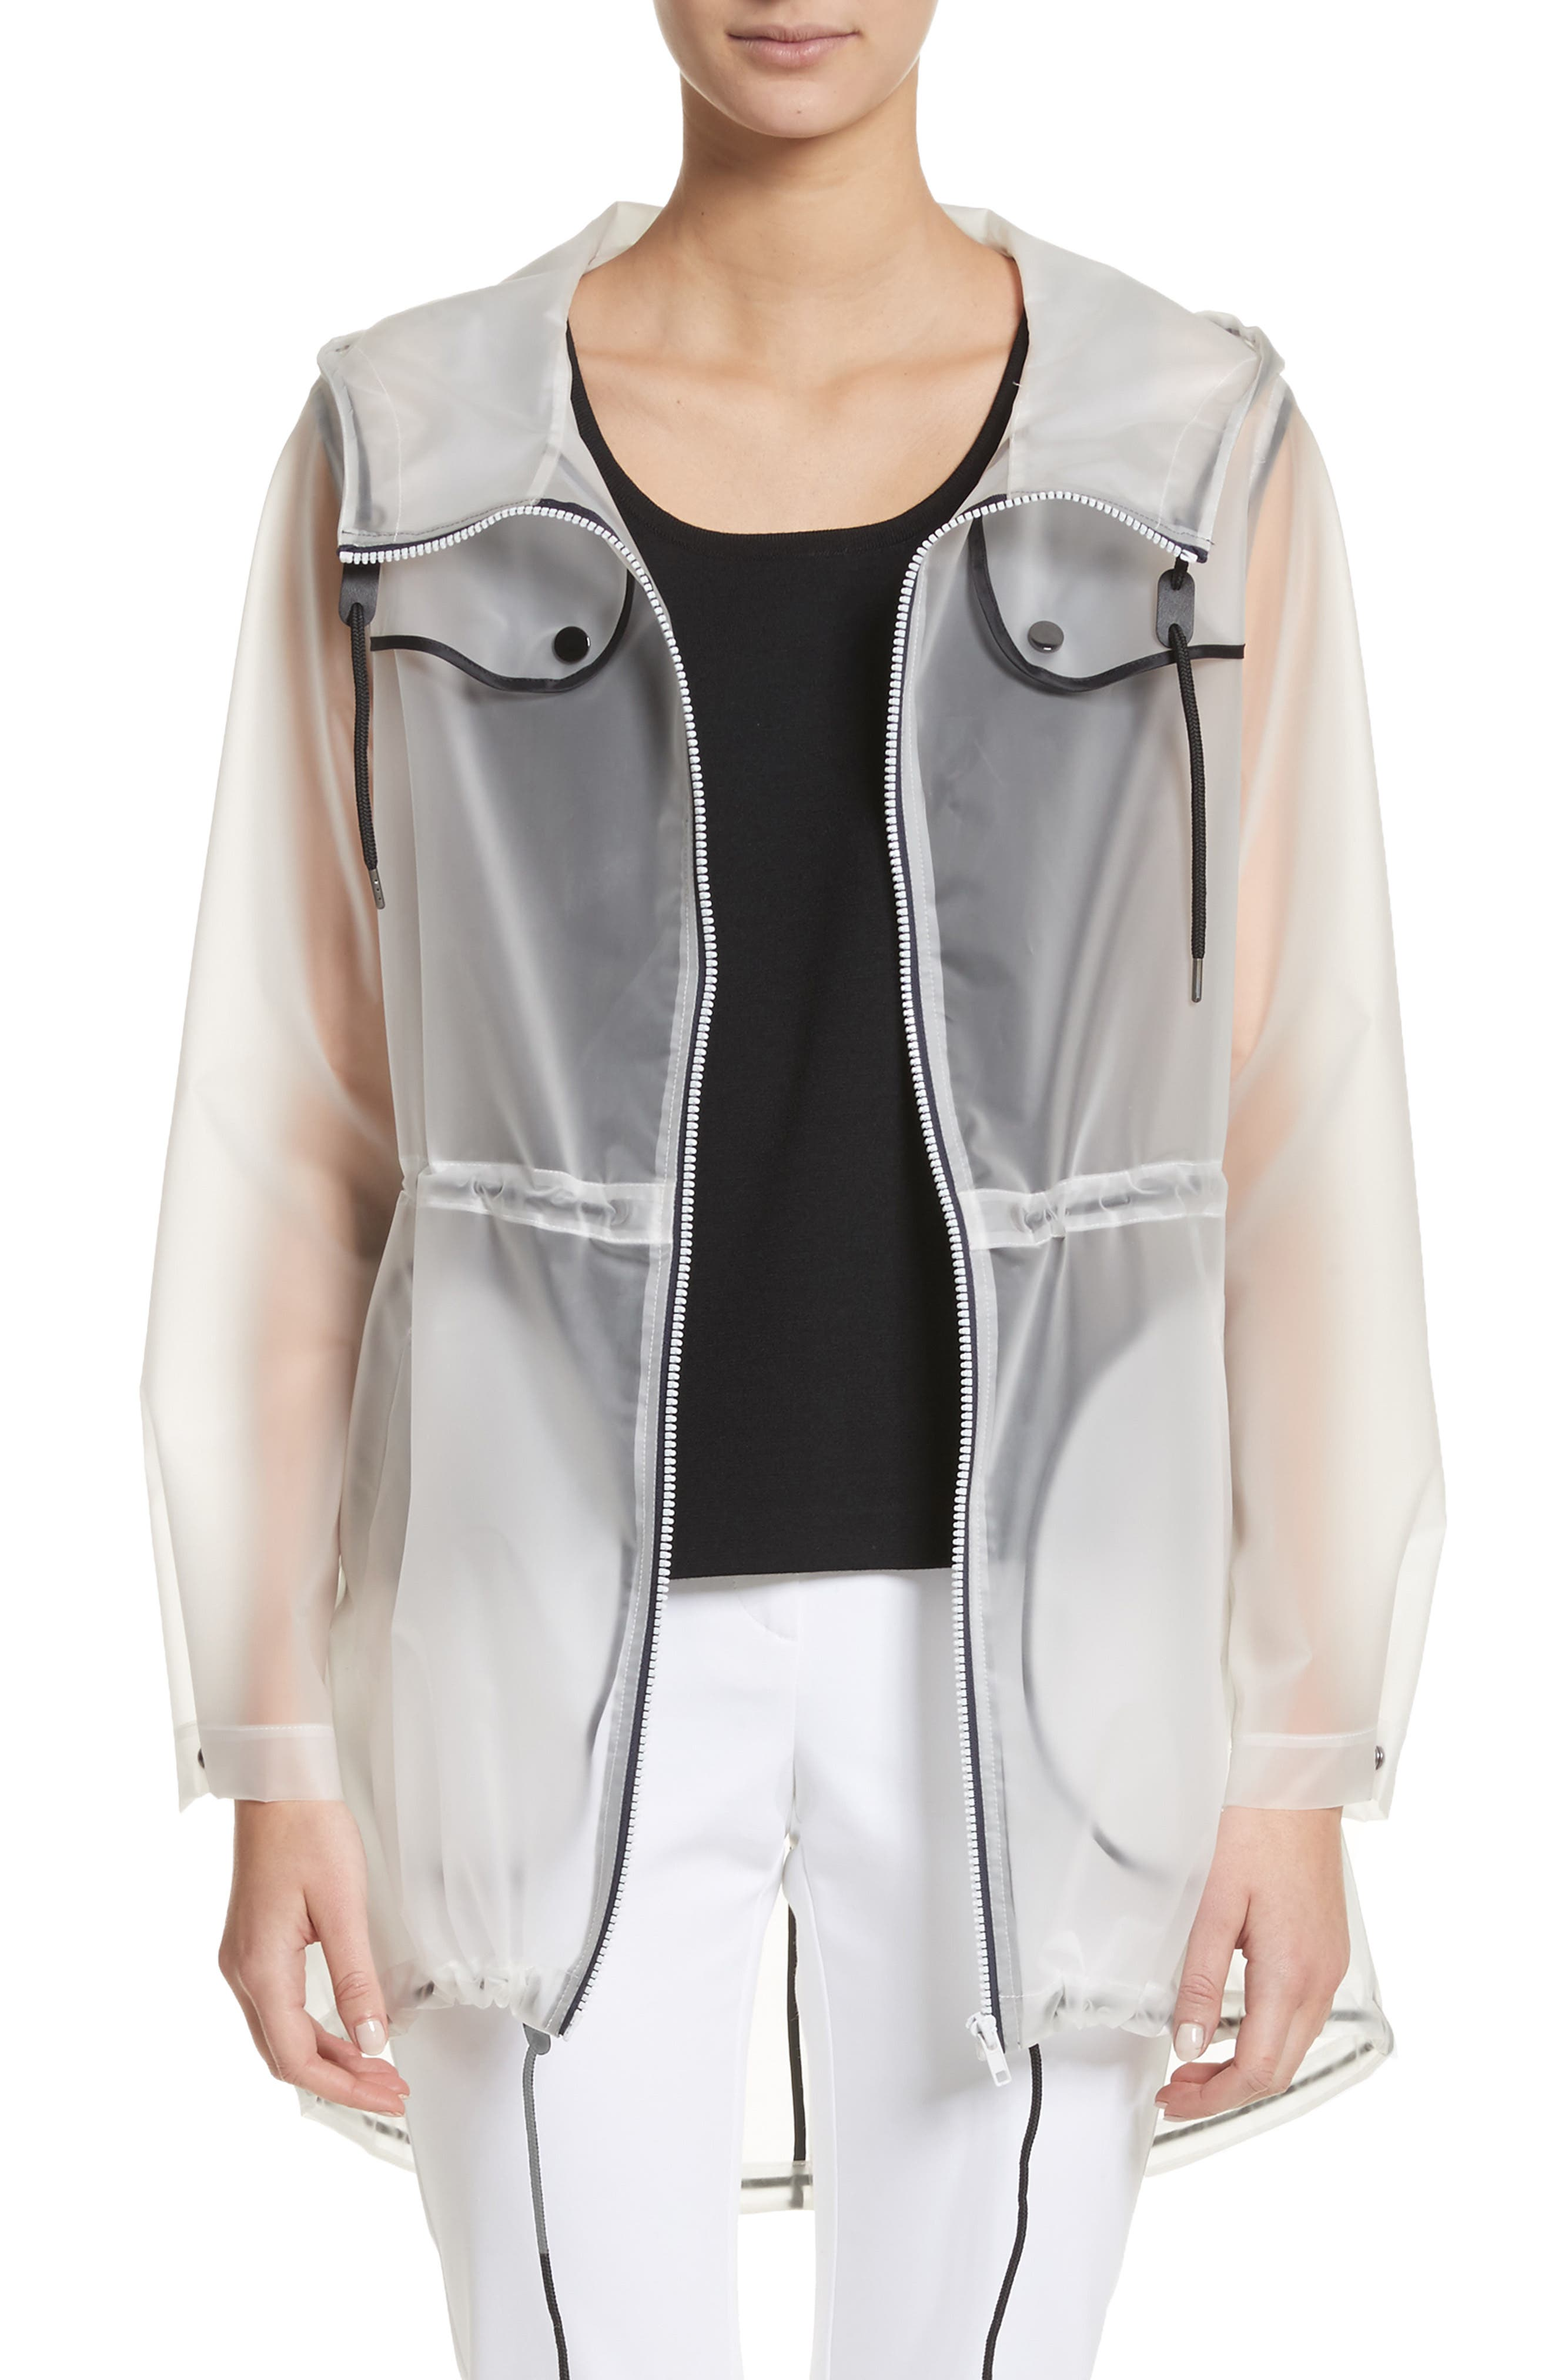 Clear Hooded Raincoat,                         Main,                         color, White